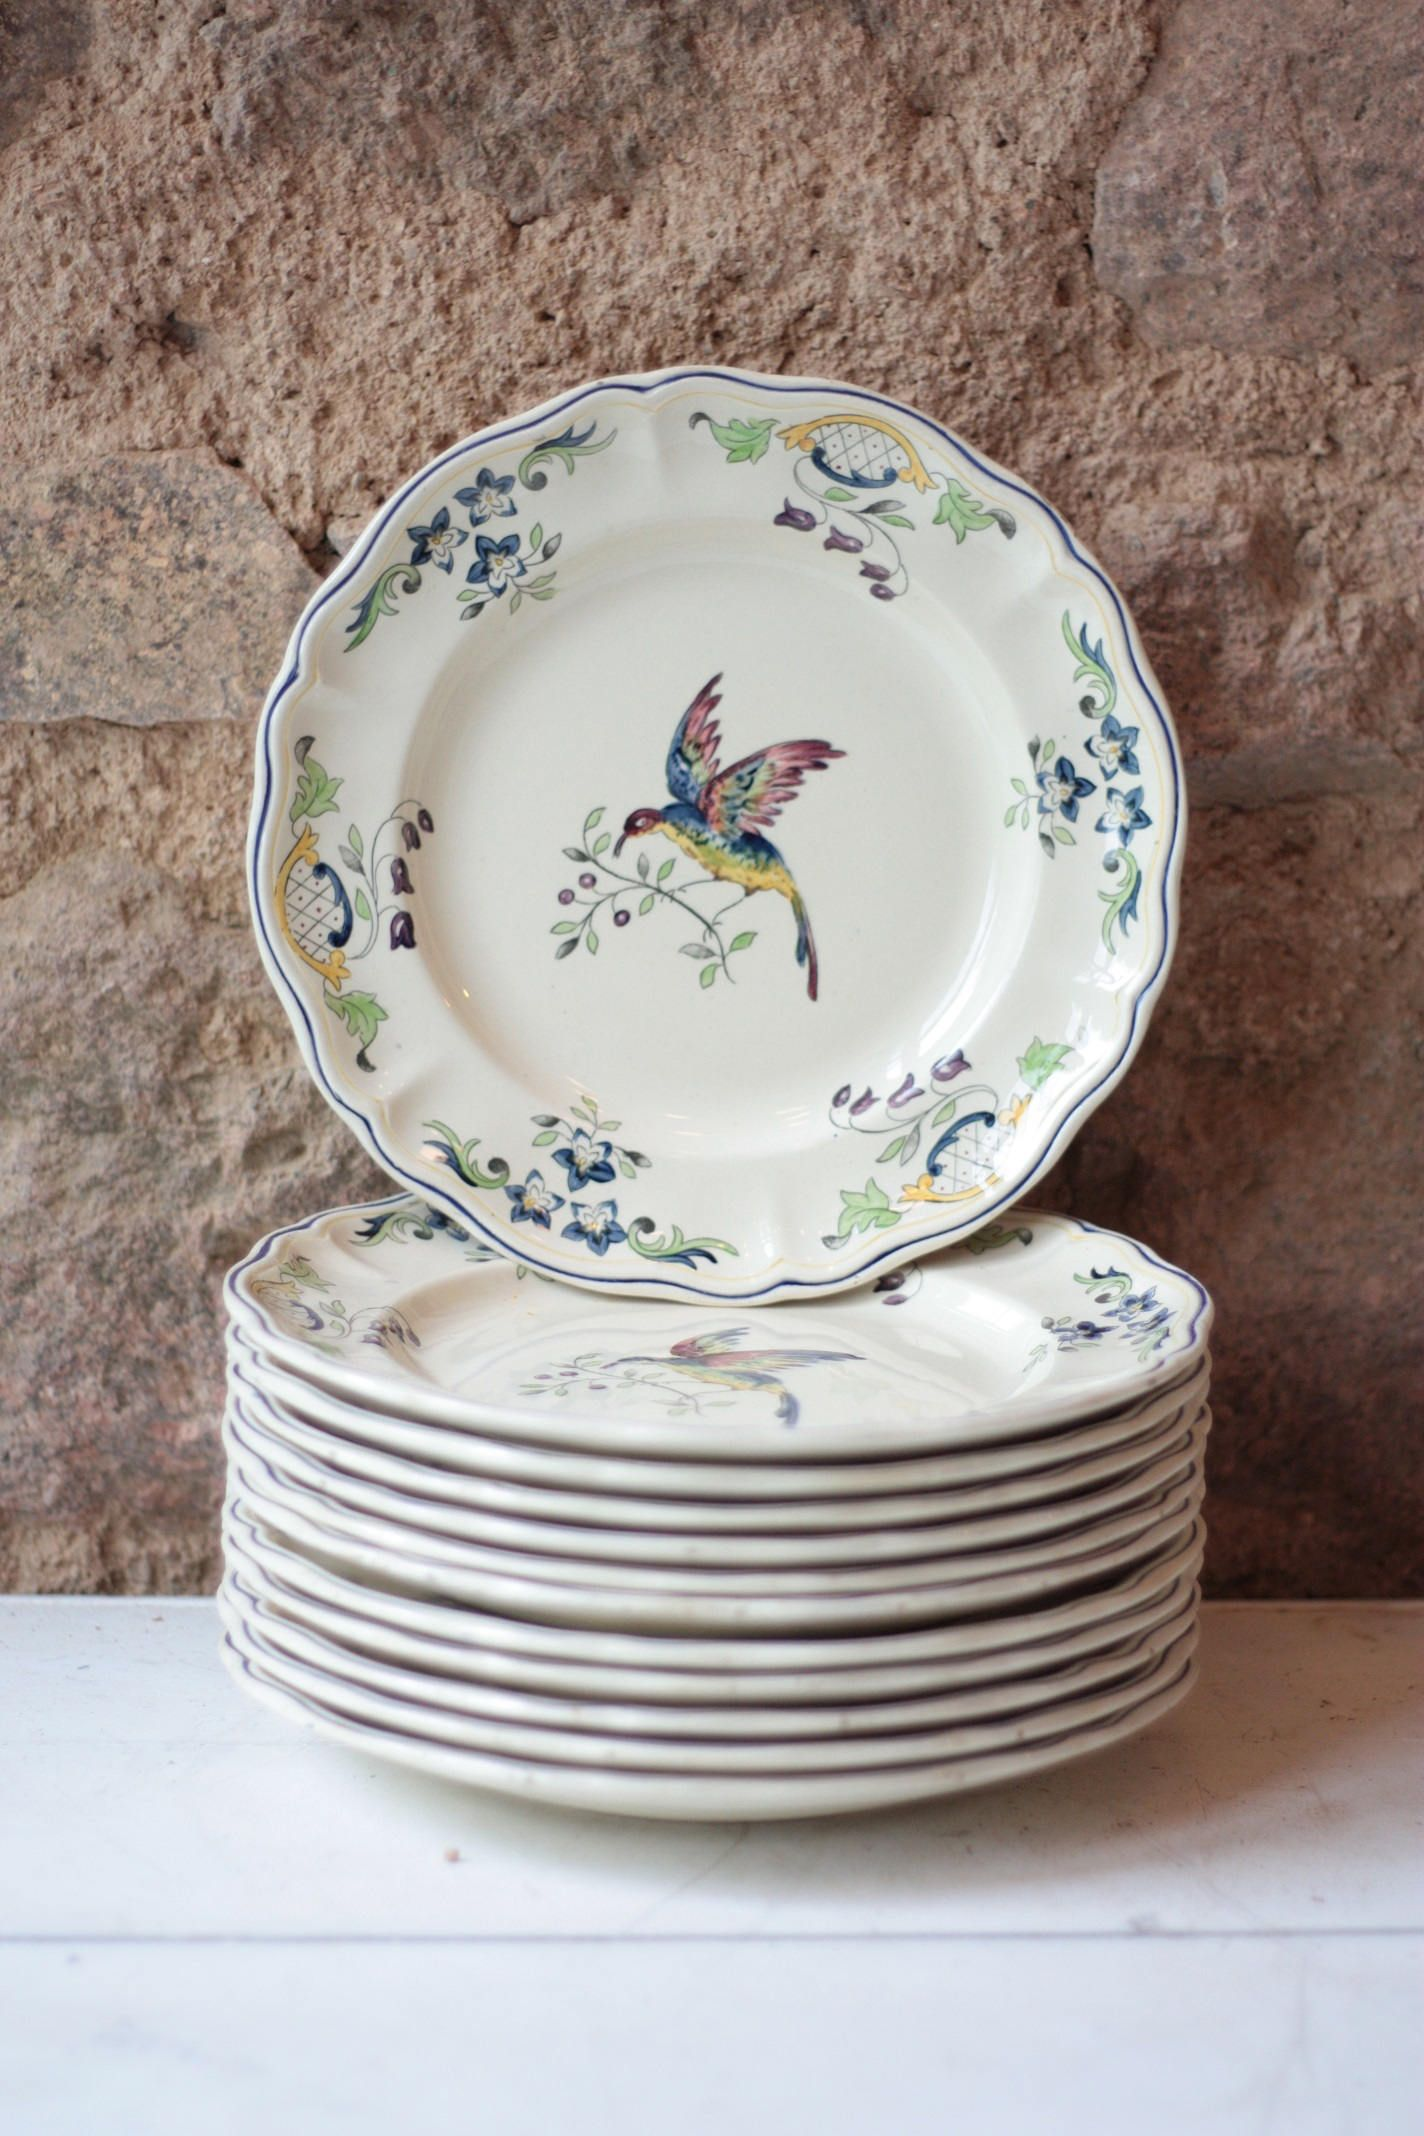 Vintage crockery.Farmhouse decor French vintage plate Hand painted plate Vintage china Rustic decor Vintage floral plate Shabby chic.